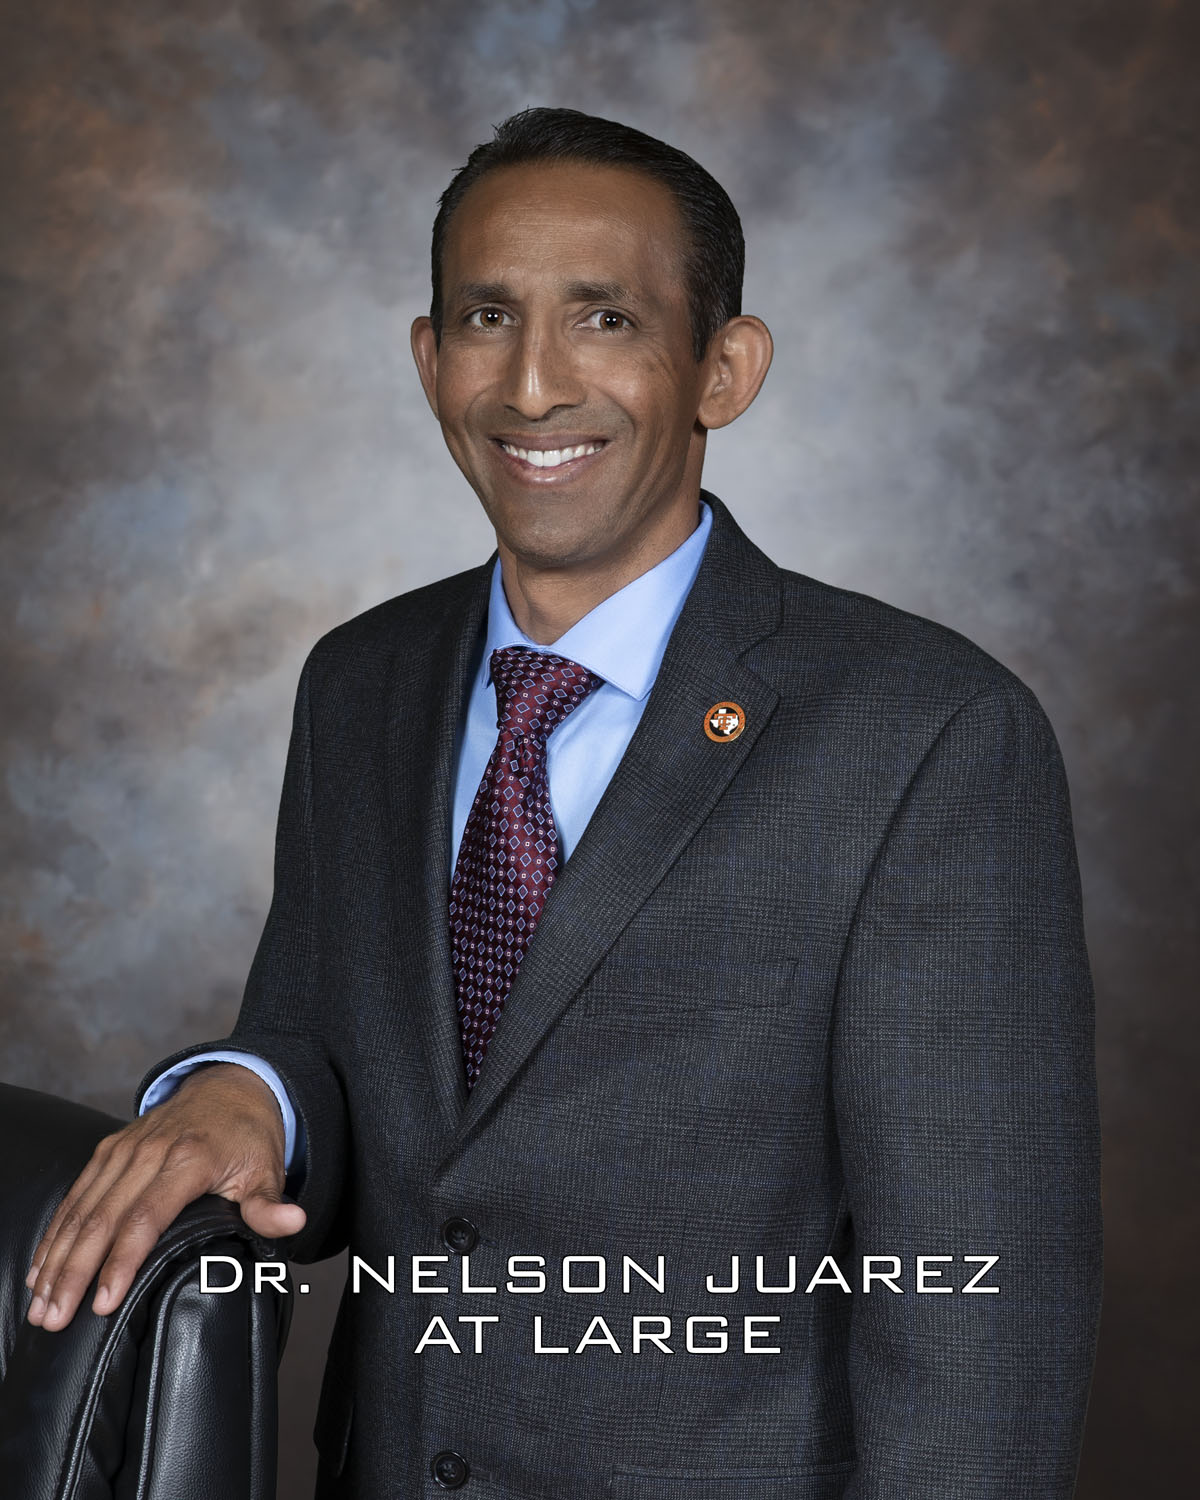 Dr. Nelson Juarez photo